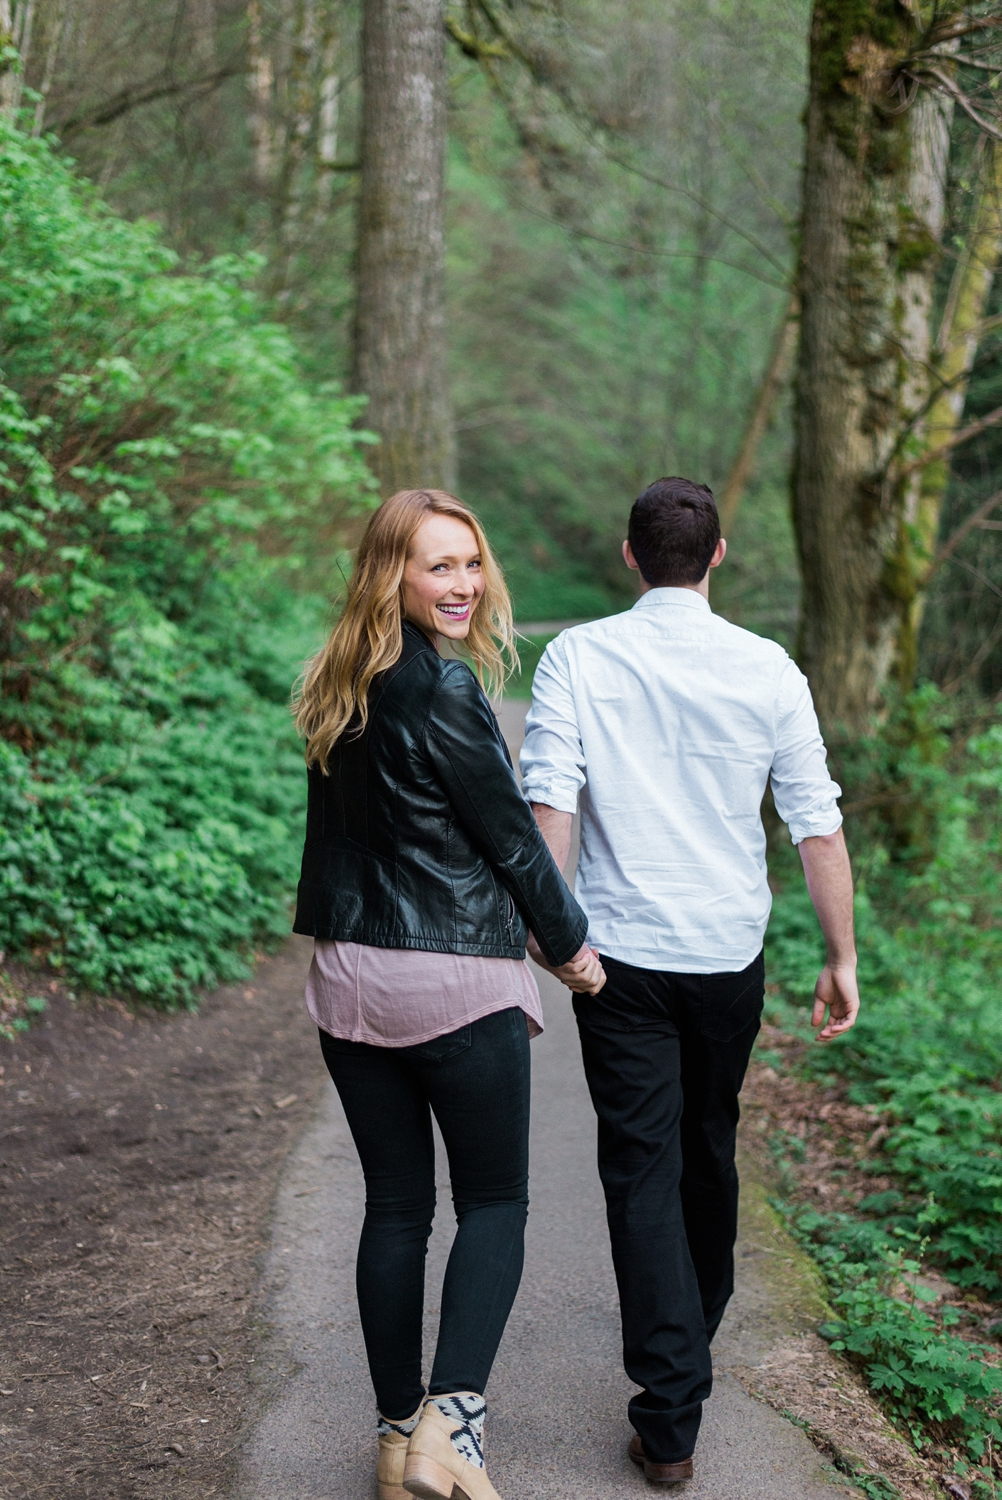 portland-engagement-columbia-river-gorge-oneonta-latourell-waterfall-shelley-marie-photo-180_cr.jpg